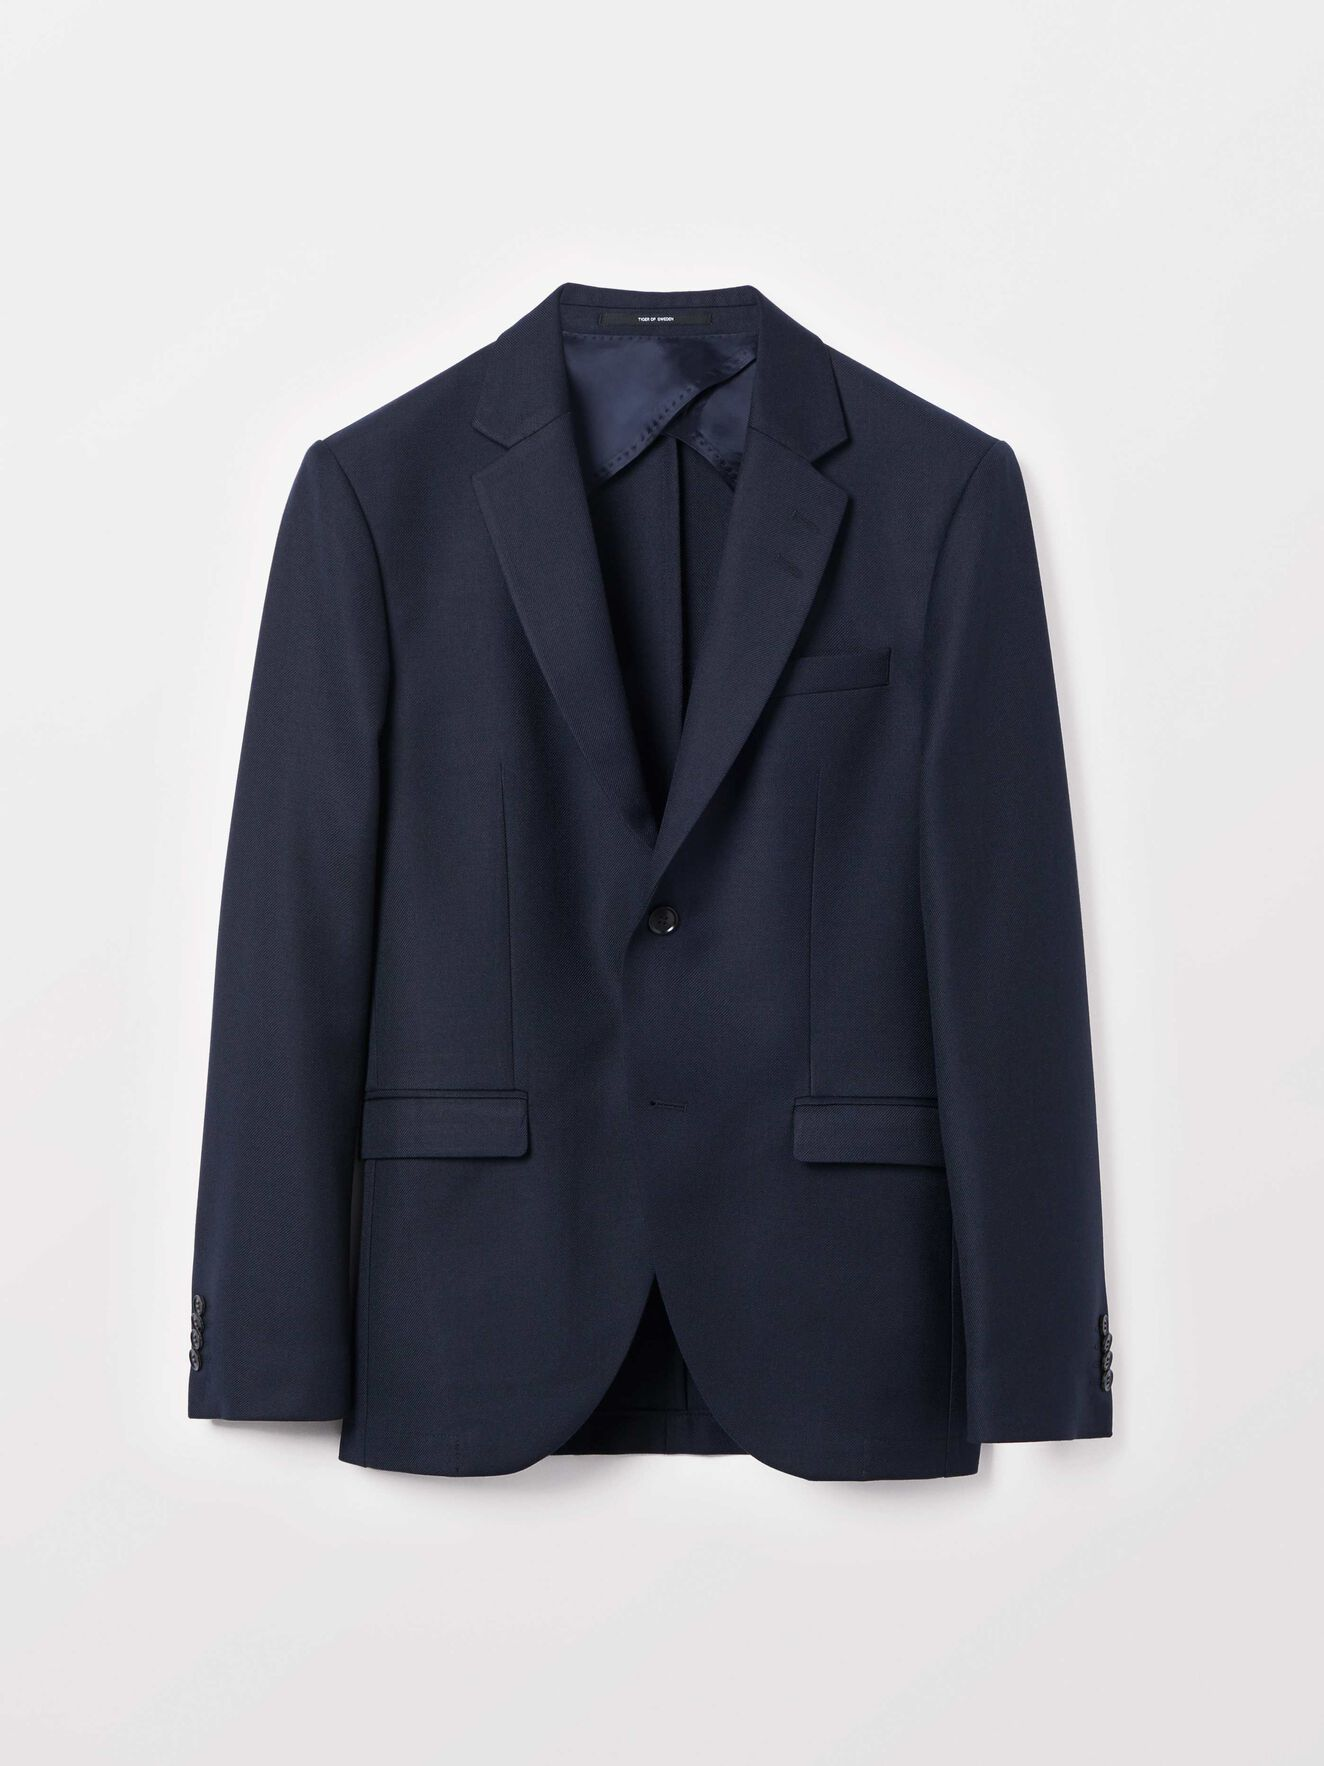 Jamonte Hl Blazer in Light Ink from Tiger of Sweden